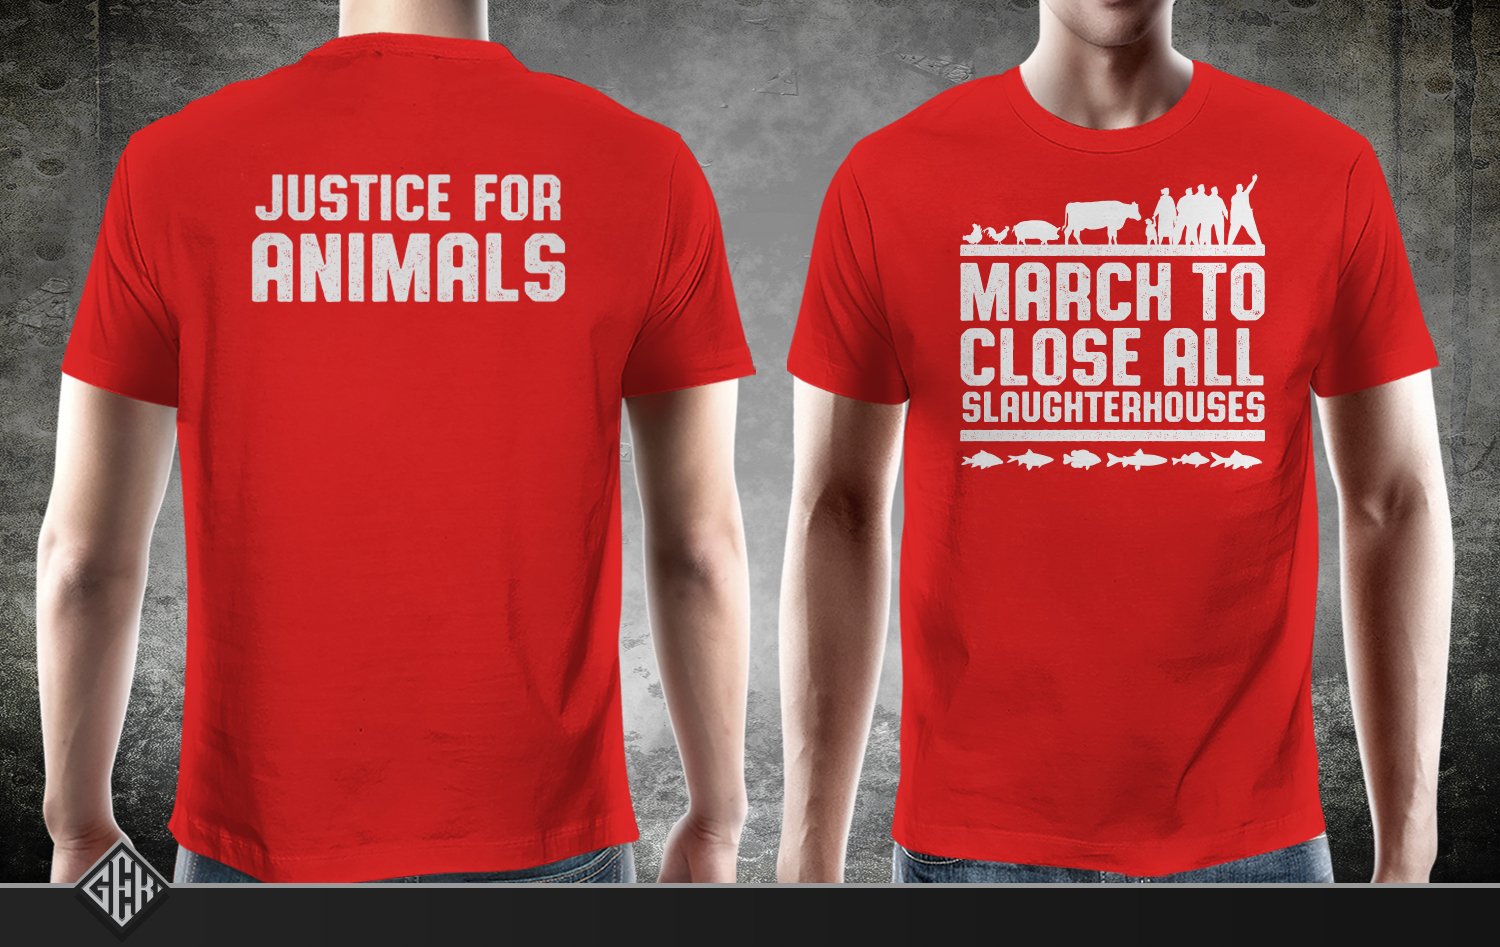 T shirt design job - T Shirt Design Job March To Close All Slaughterhouses T Shirt Design